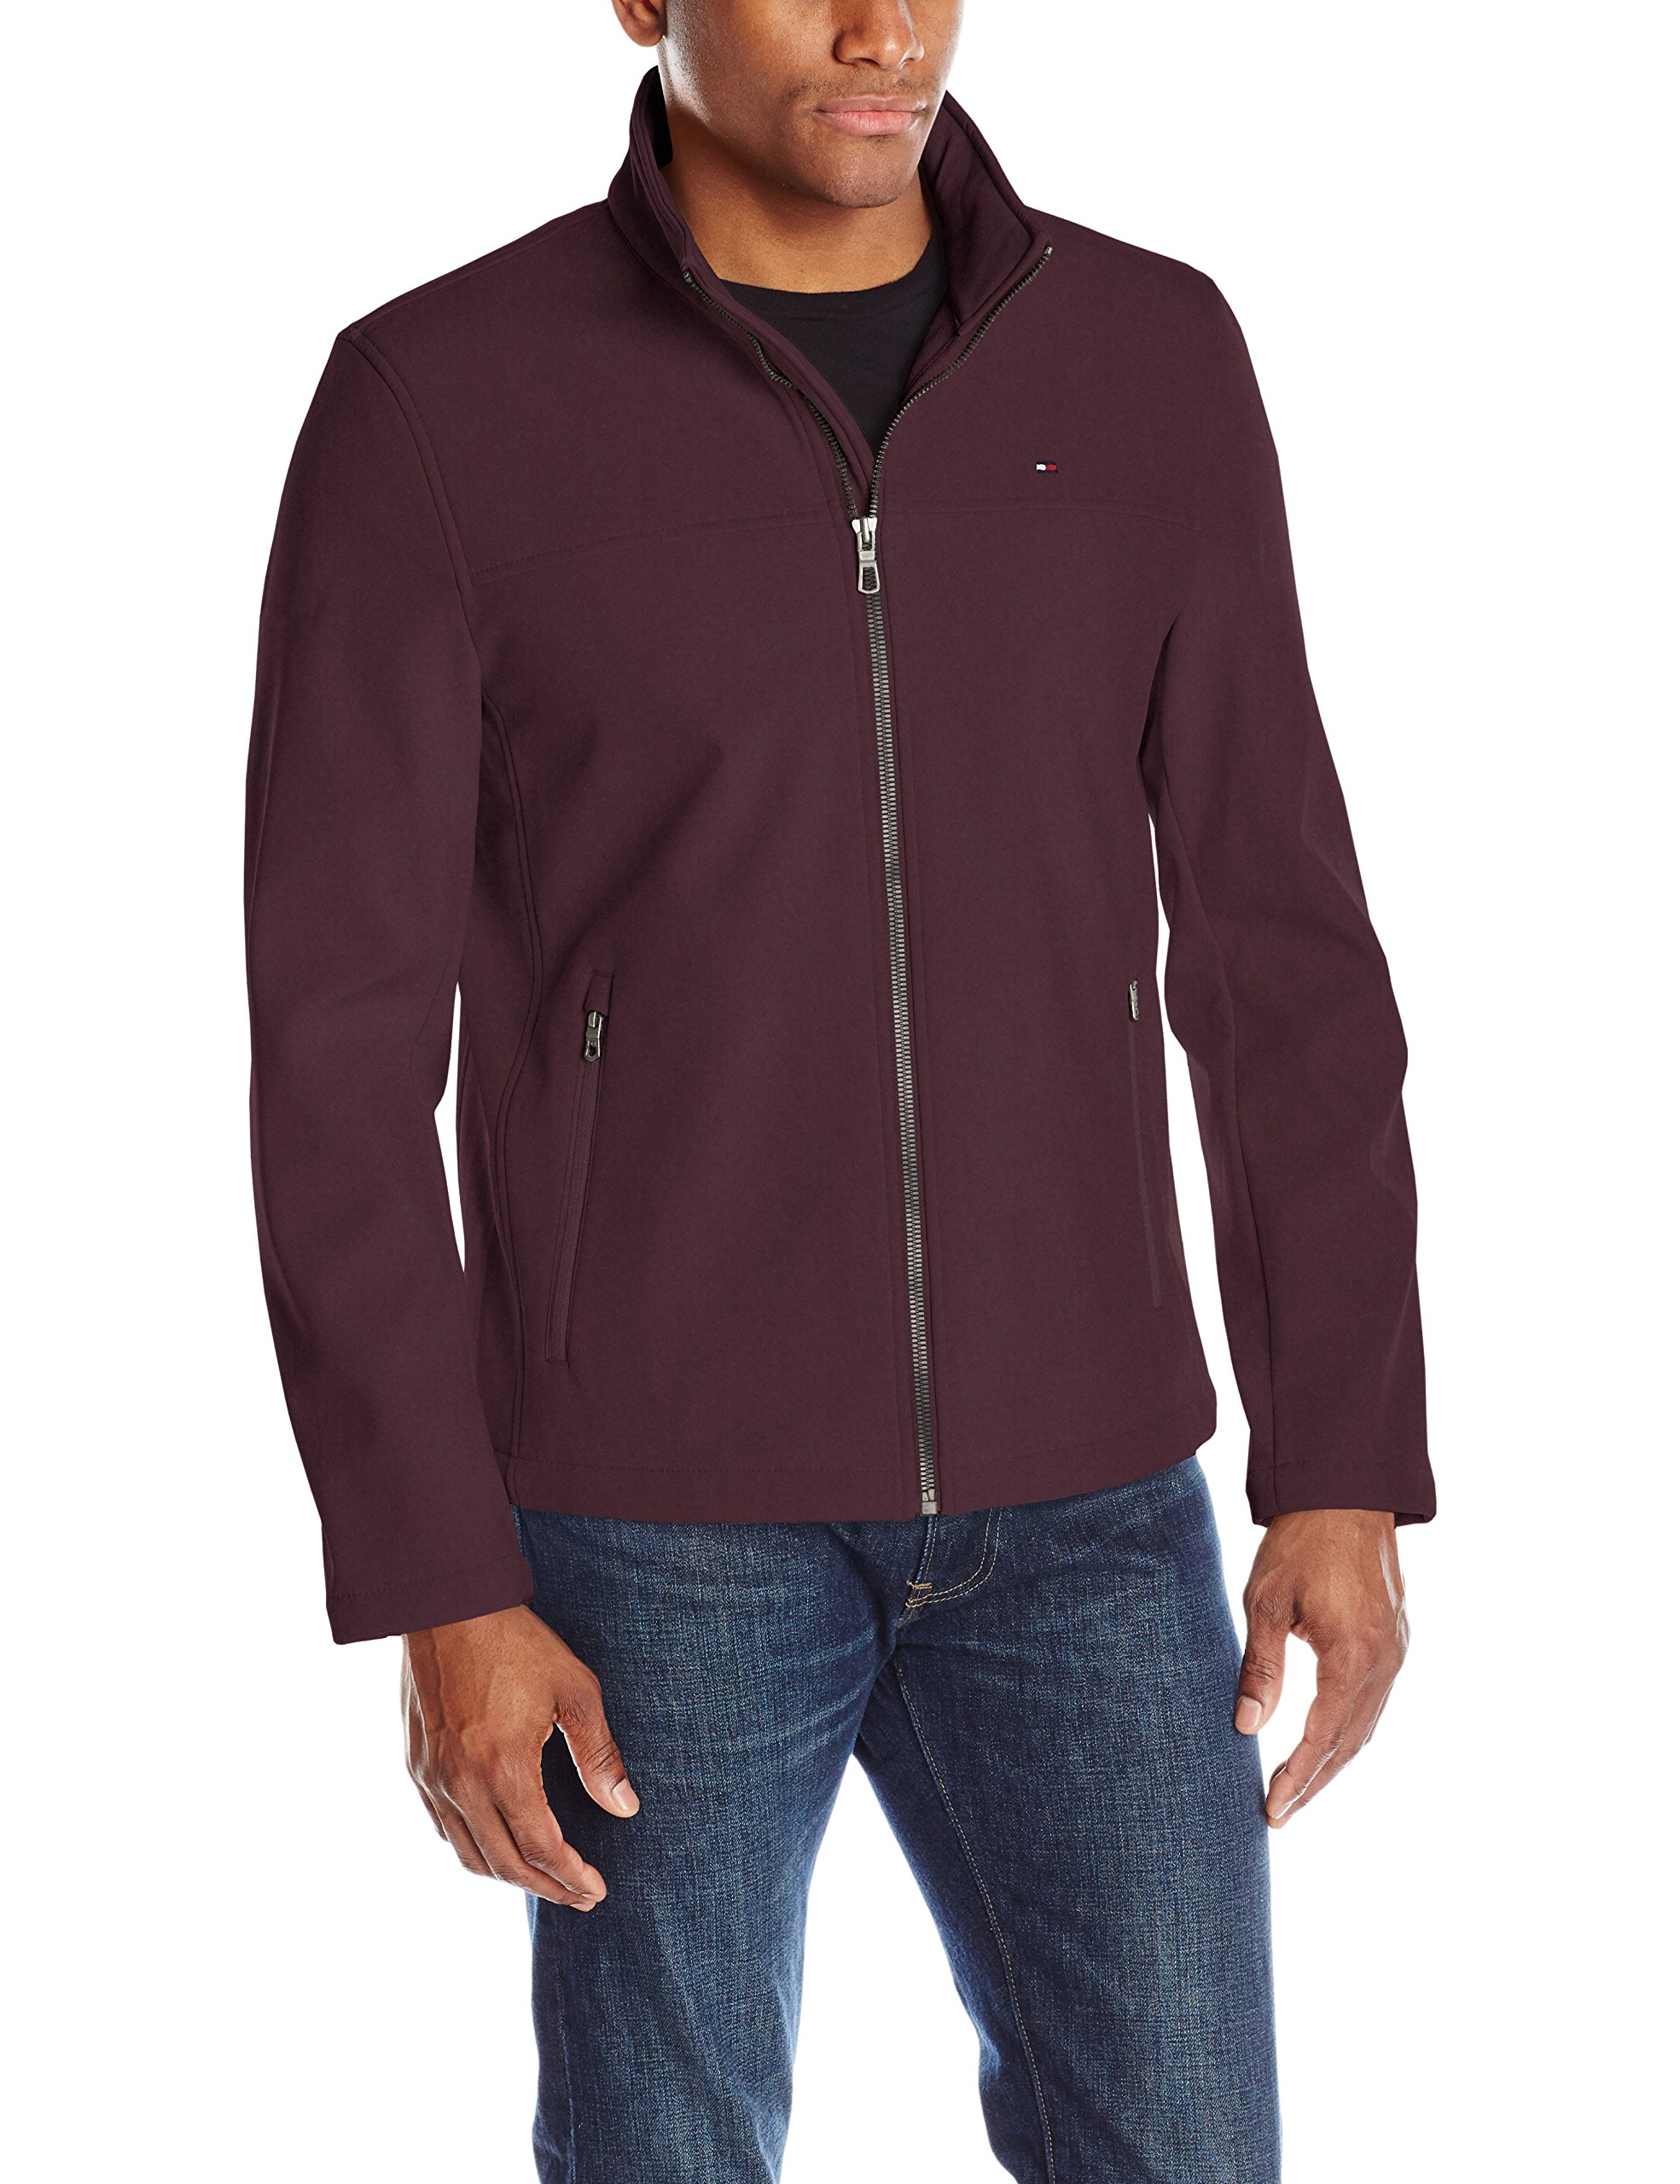 Tommy Hilfiger Men's Classic Soft Shell Jacket, Wine, Medium